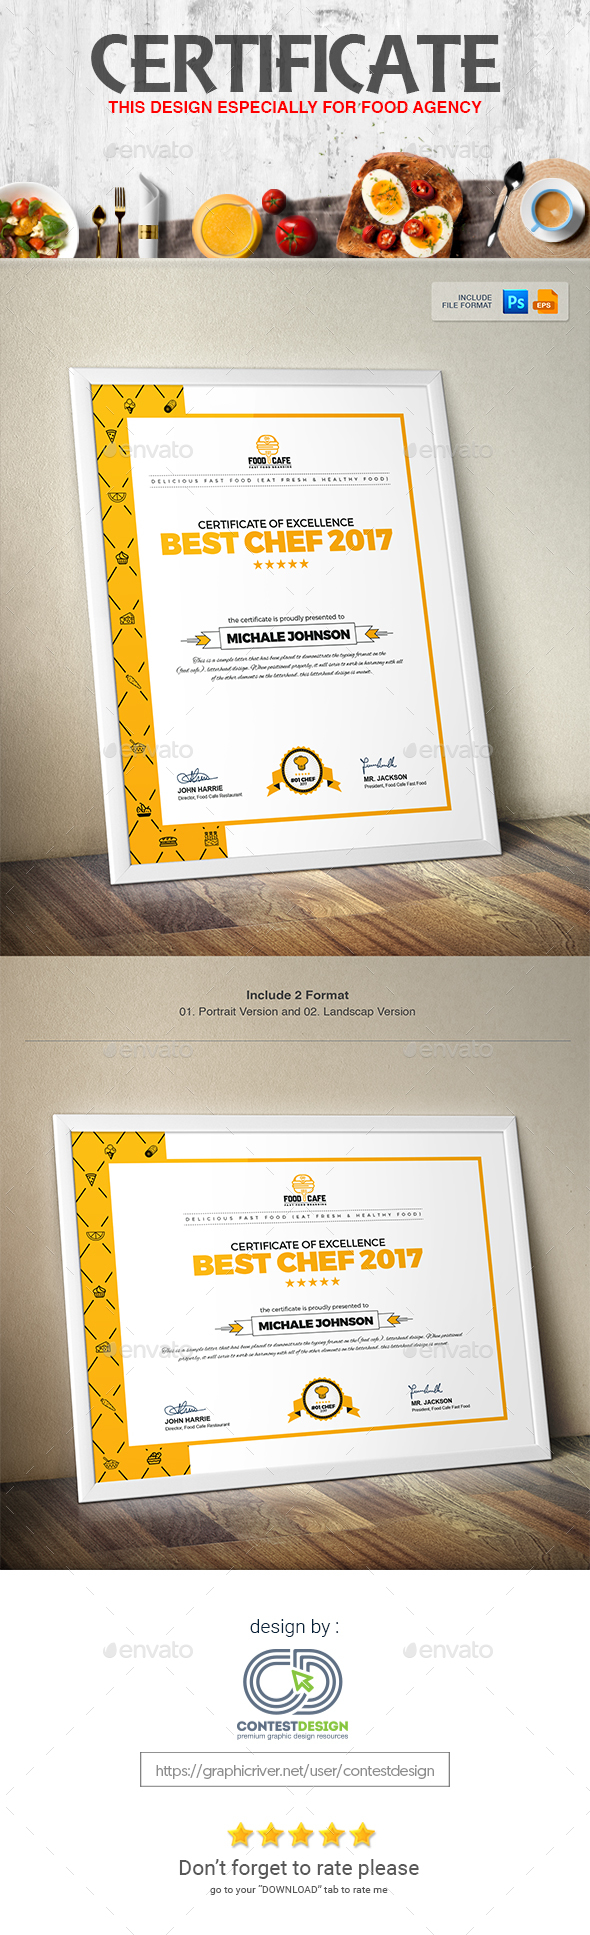 Certificate design template psd vector eps ai illustrator certificate design template psd vector eps ai illustrator 1betcityfo Choice Image